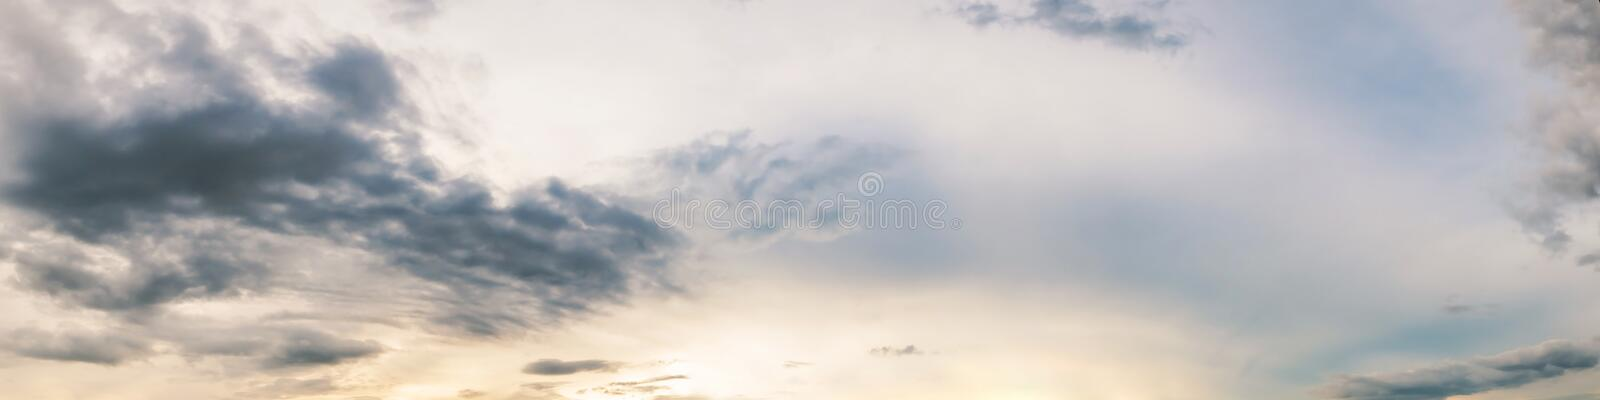 Dramatic panorama sky with cloud on sunrise and sunset time. Panoramic image royalty free stock photography